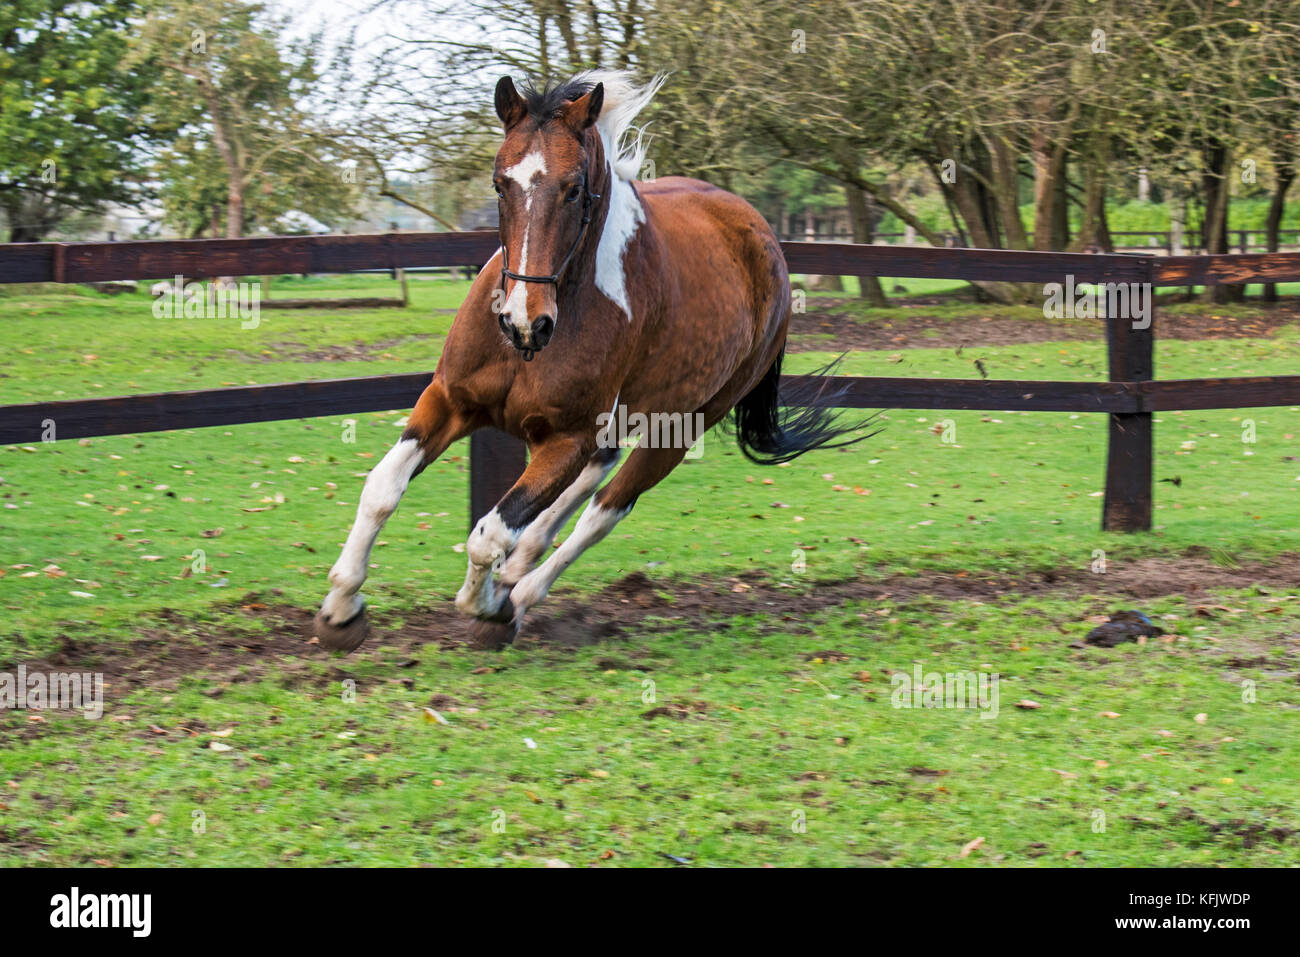 Pinto horse / Quarter Horse stallion running outside in field within wooden enclosure - Stock Image